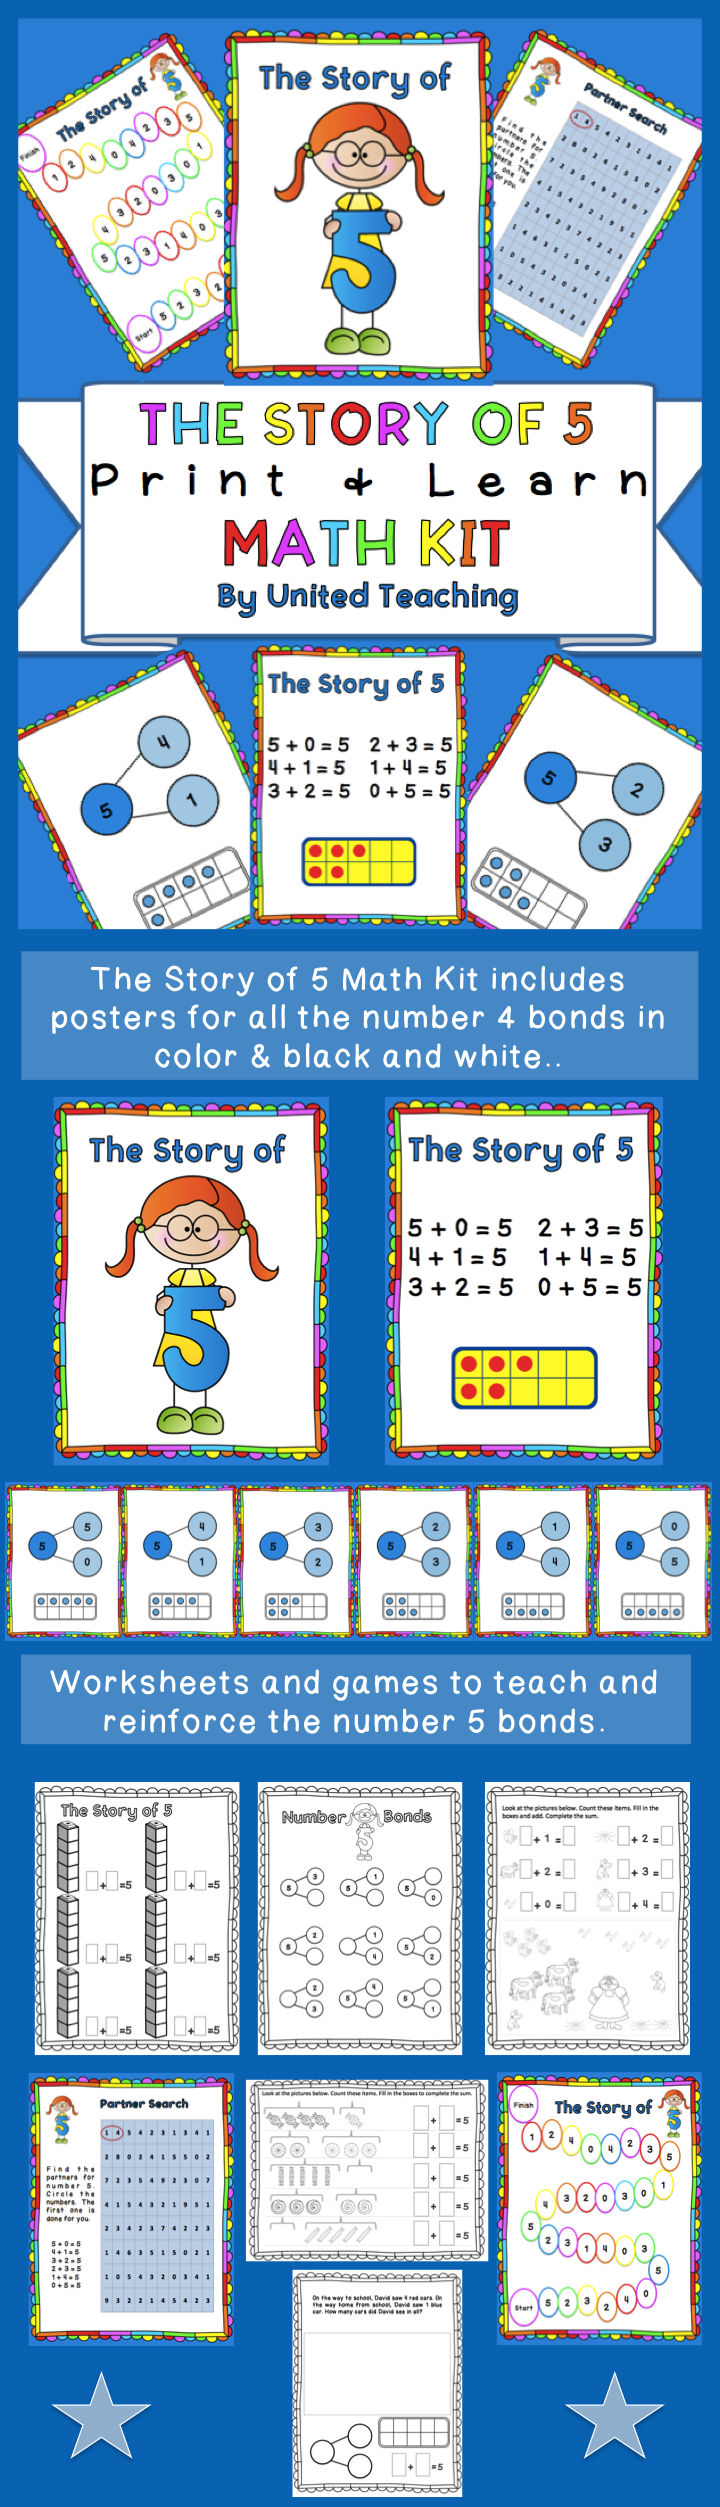 The Story of 5 Print + Learn Math Kit | Common core standards, Core ...